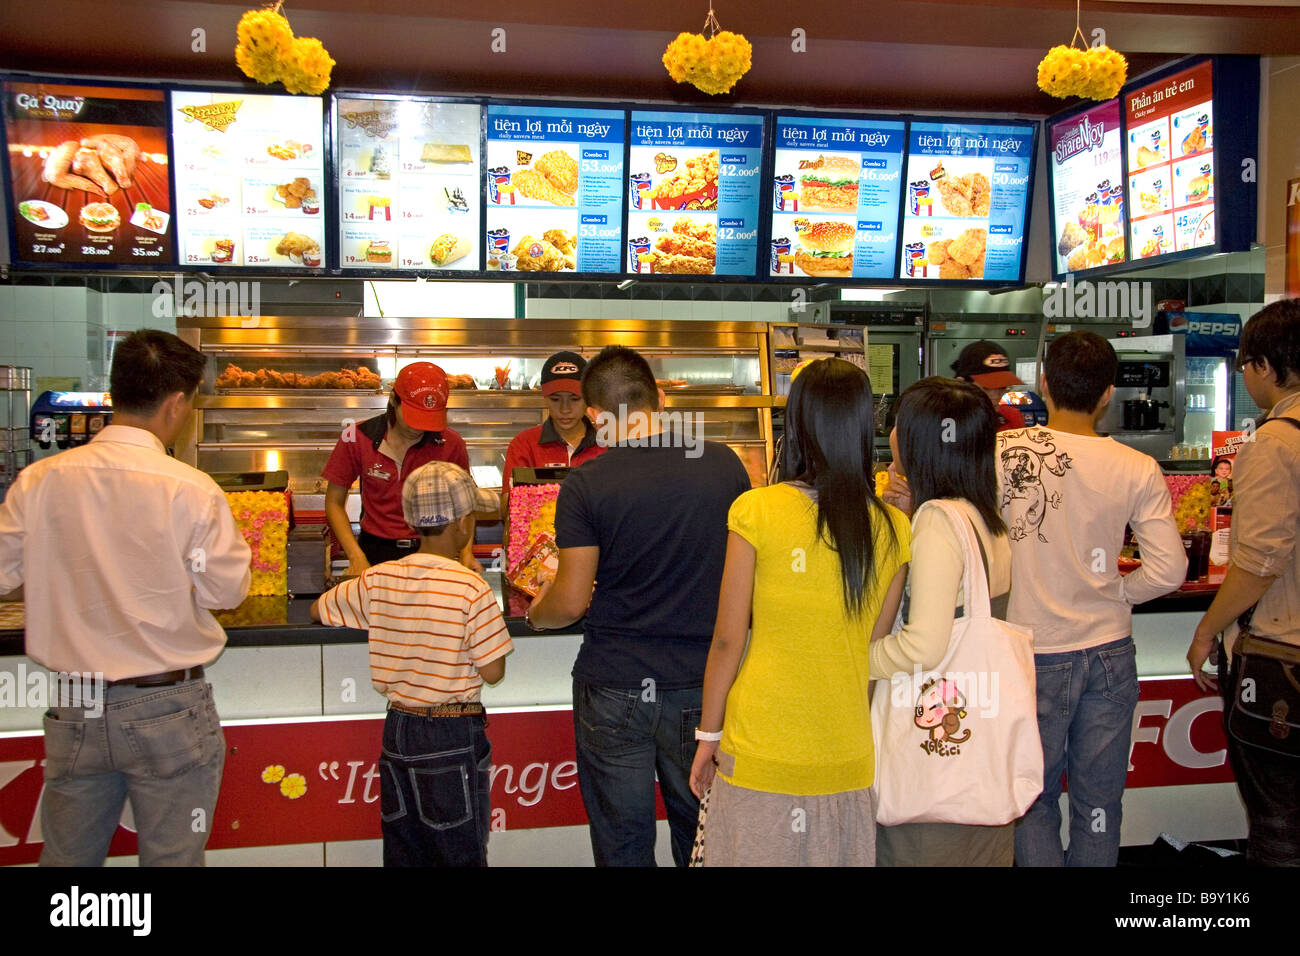 Stock Photo - Vietnamese people eat at a KFC restaurant inside the Diamond Plaza shopping center in downtown Ho Chi Minh City Vietnam